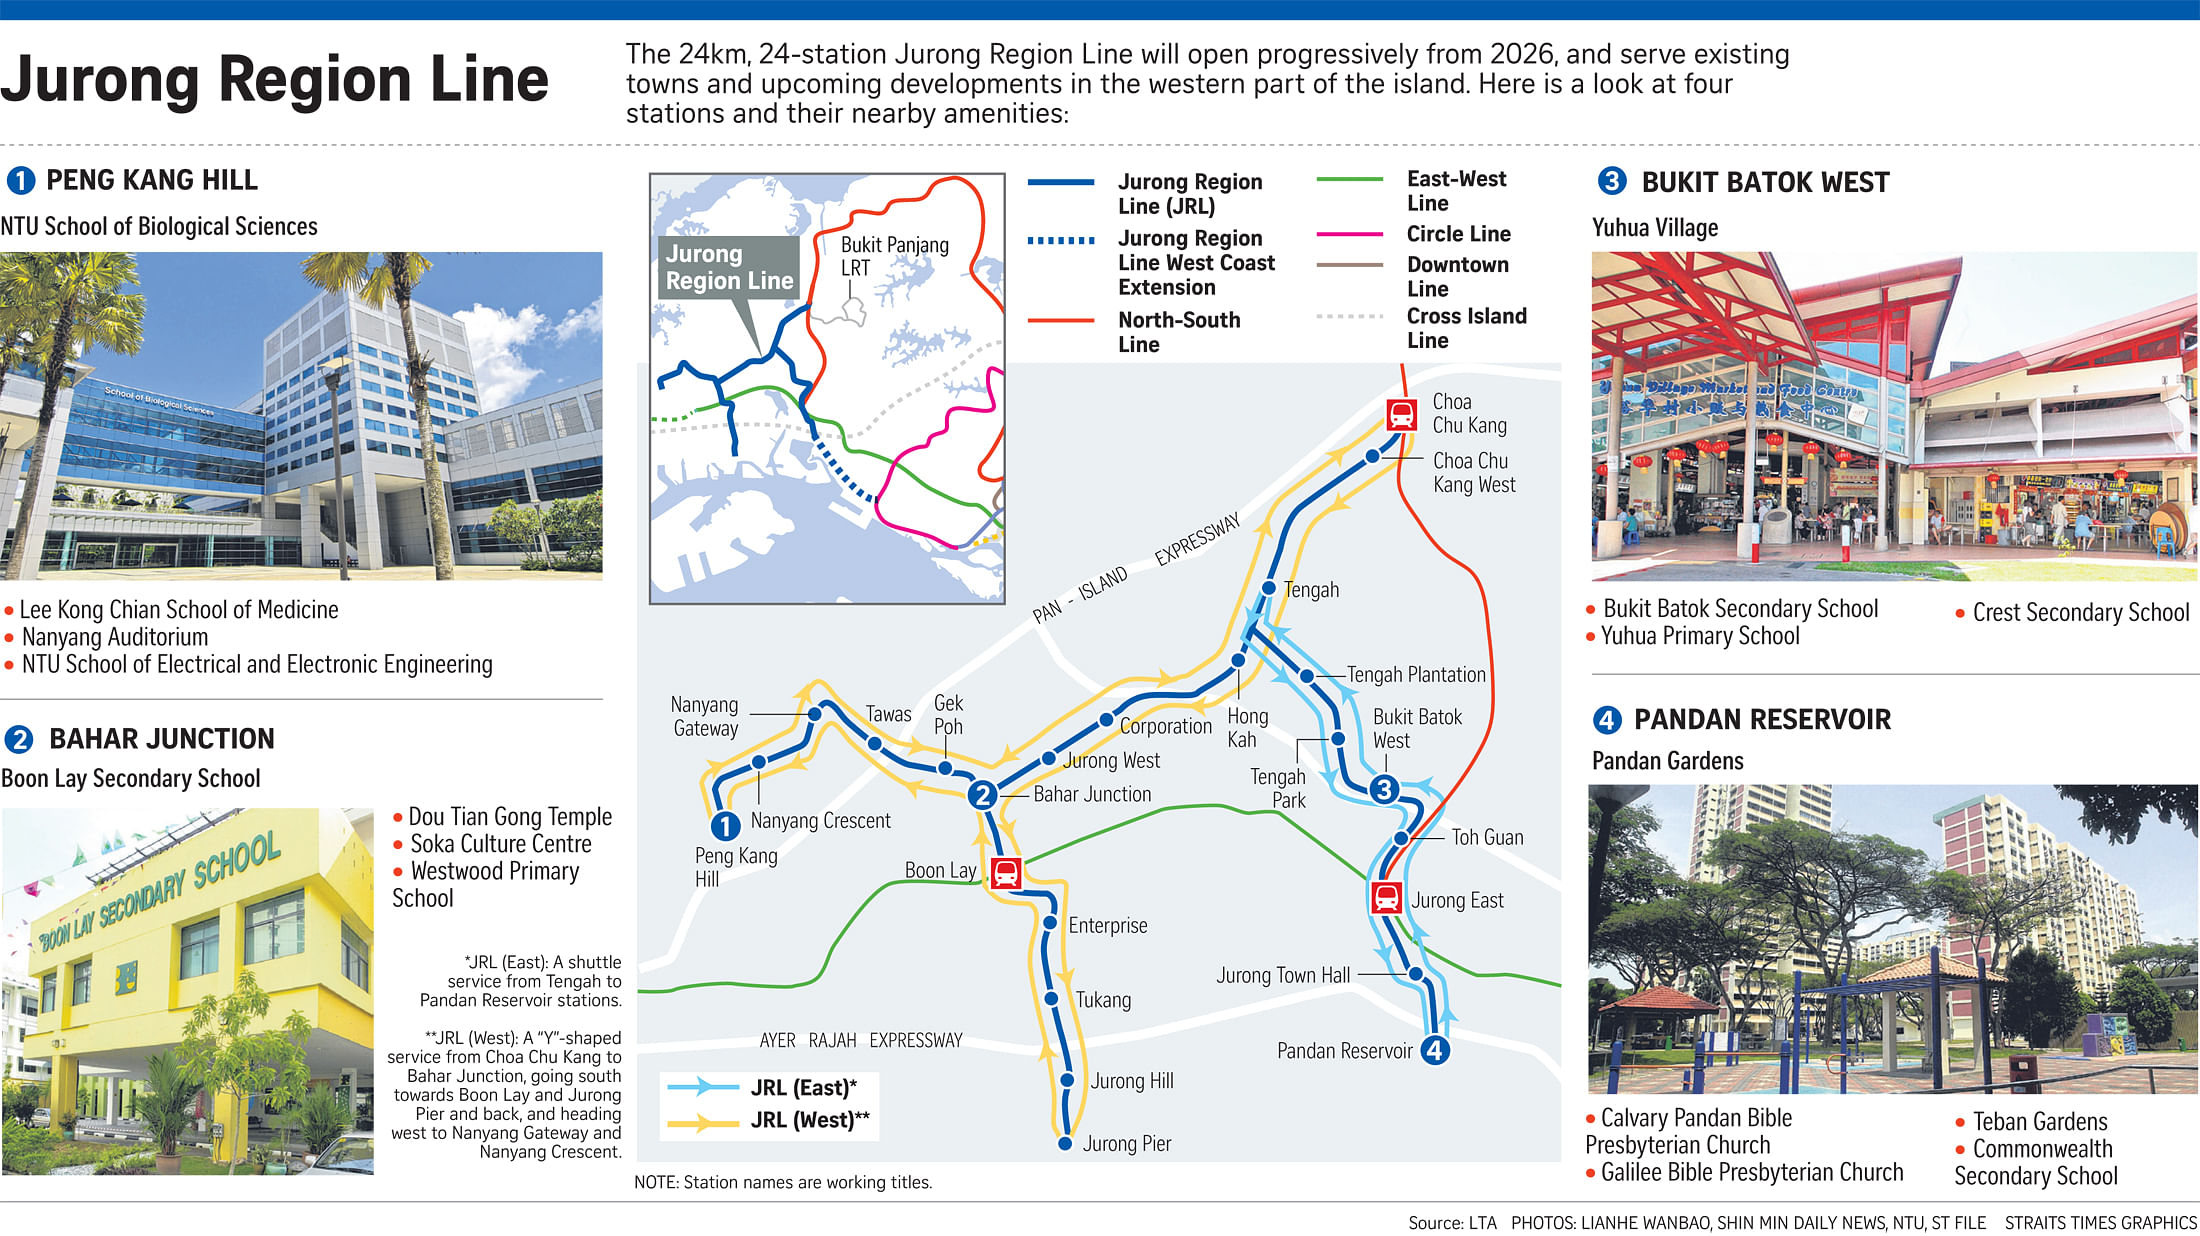 24km Jurong Region Line to open from 2026, Transport News